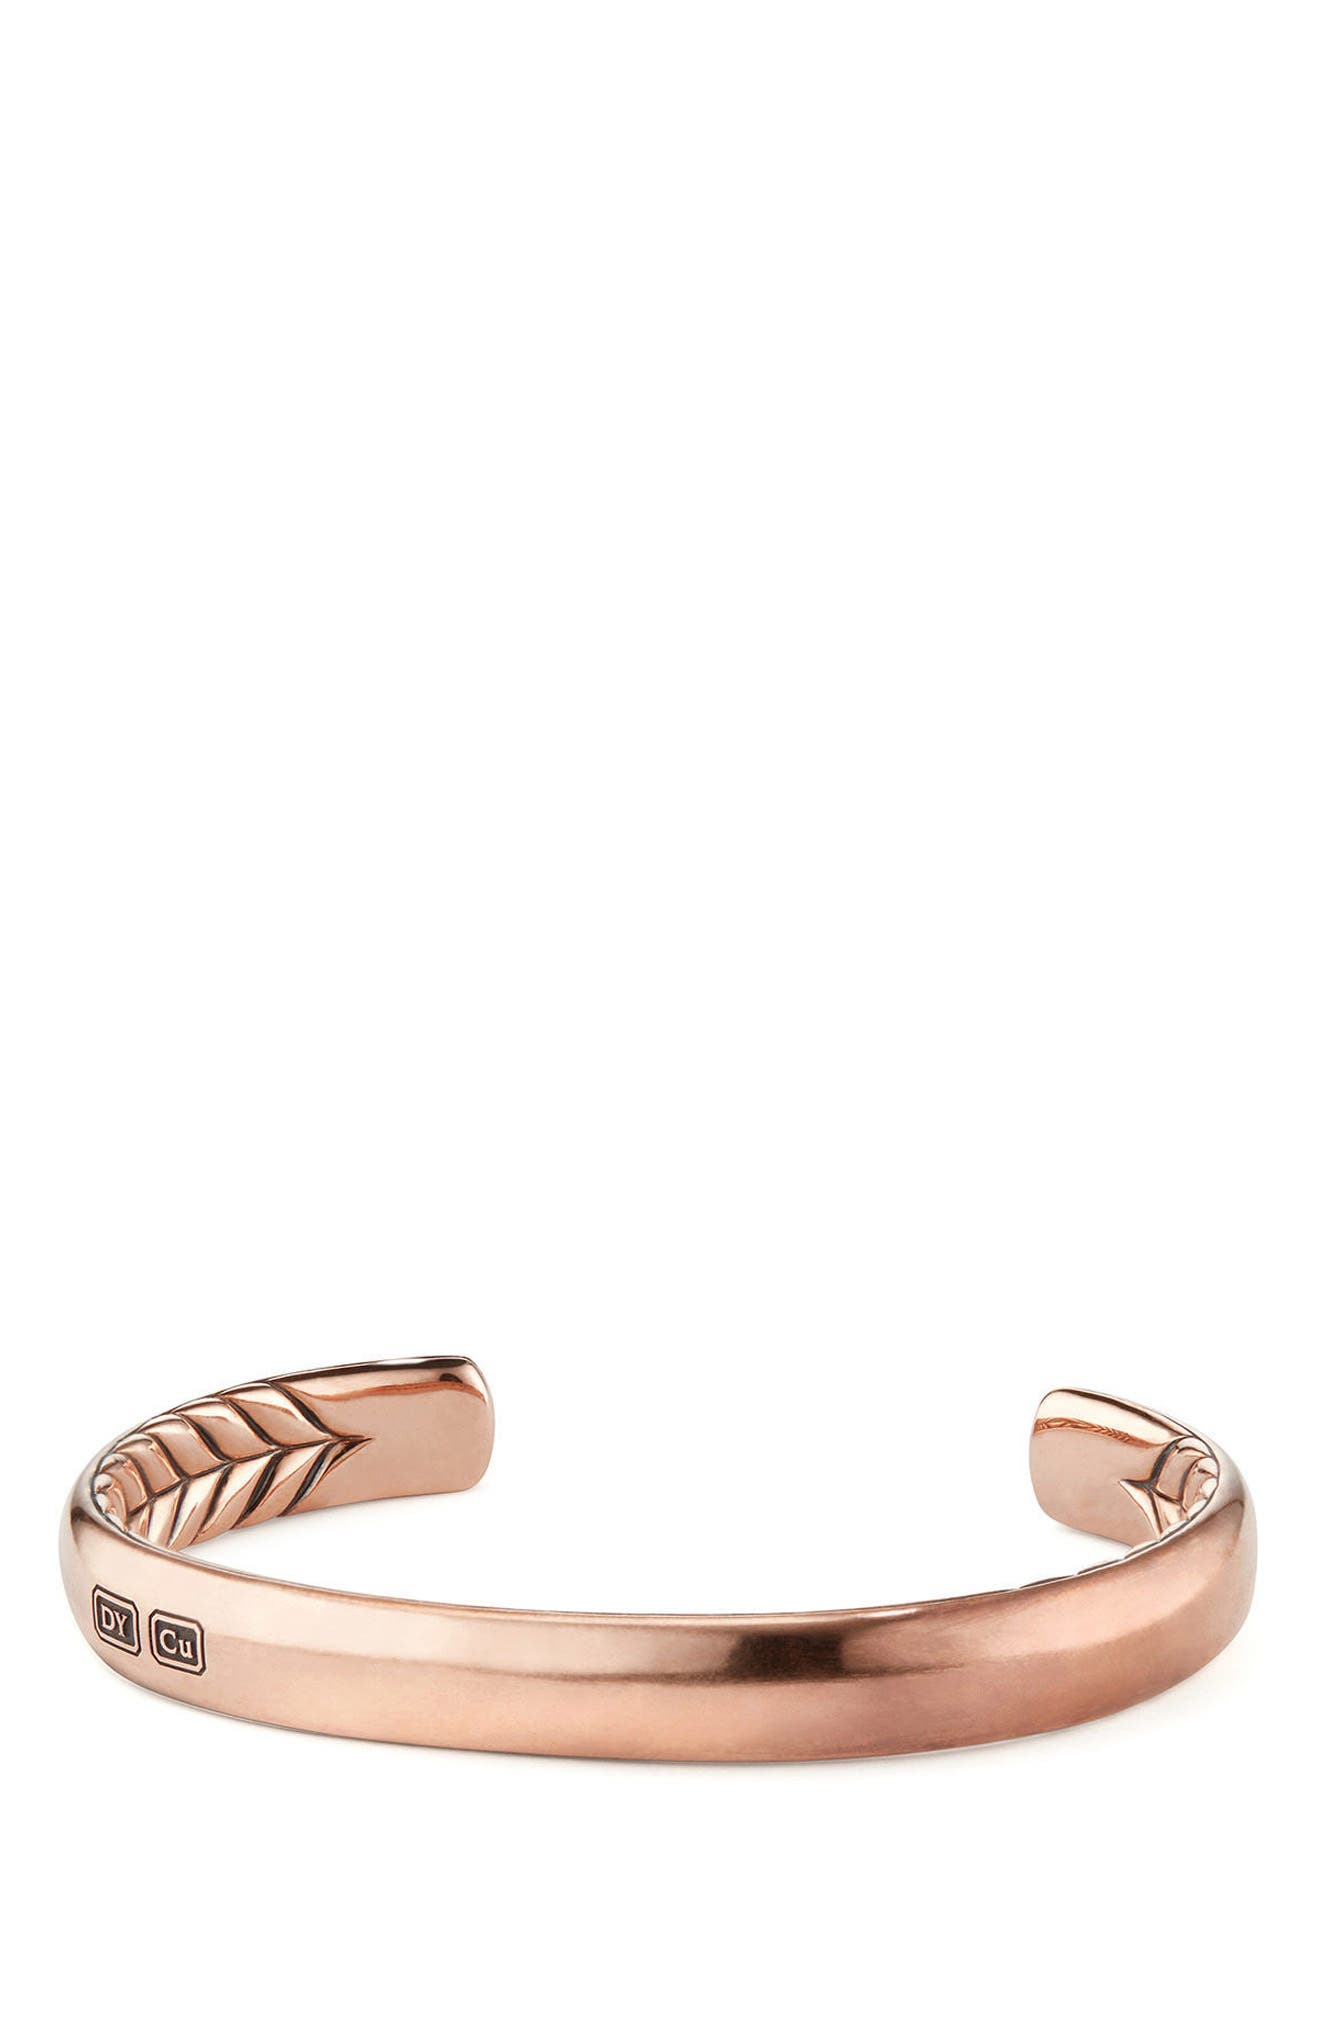 David Yurman Titian Streamline Cuff Bracelet in Copper